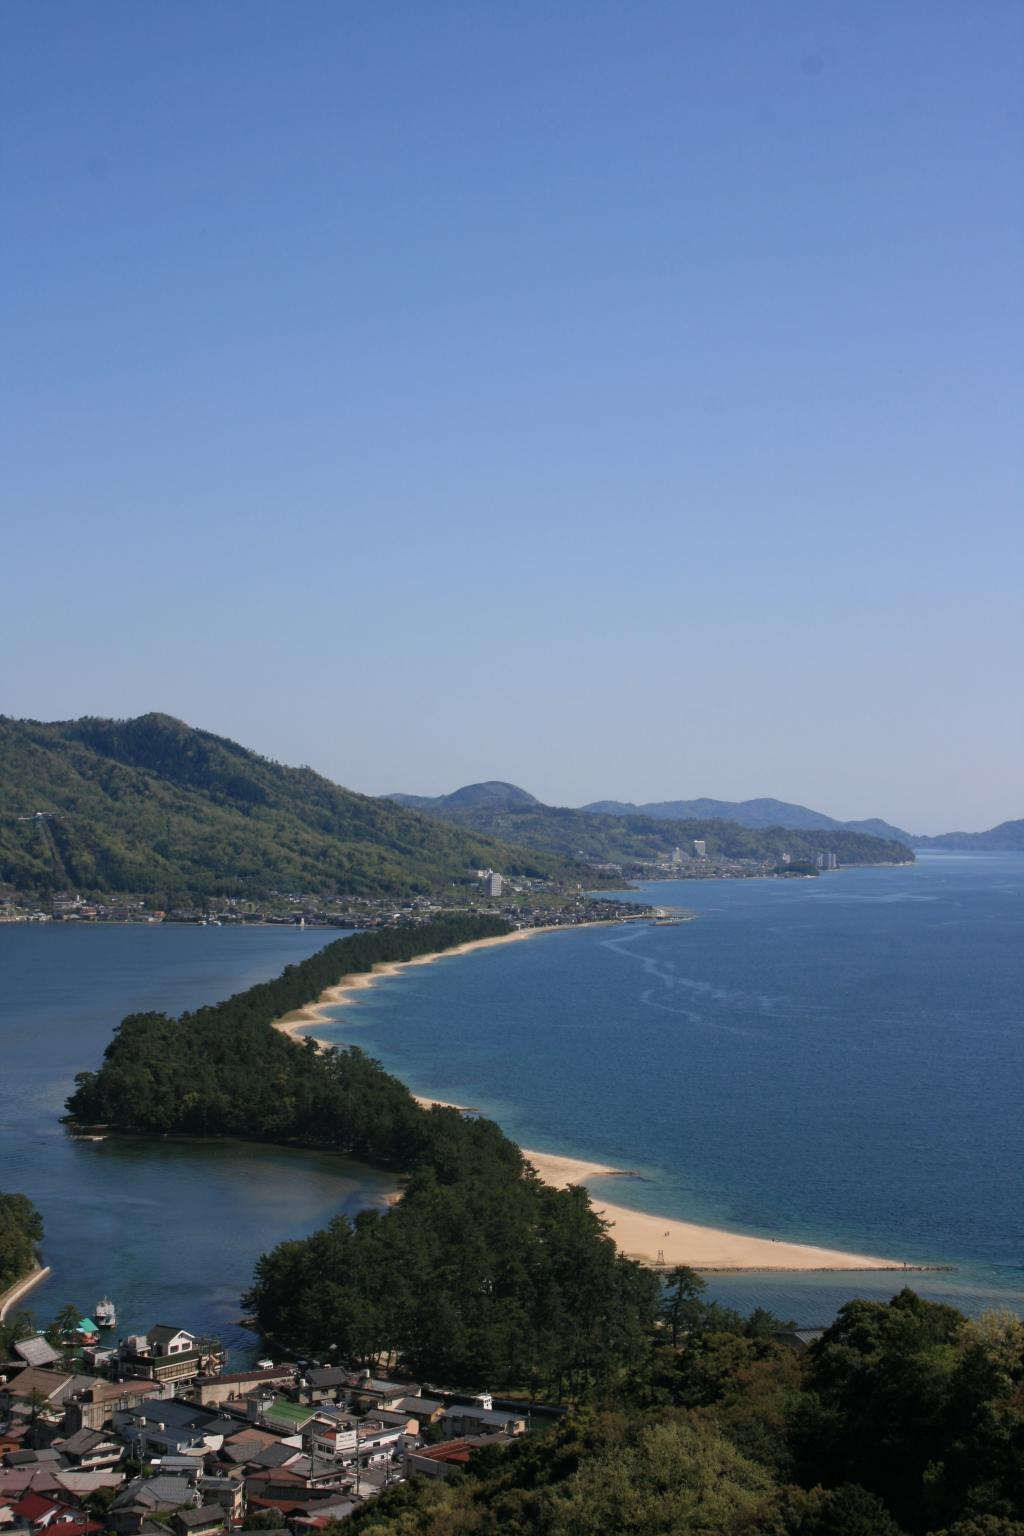 Outlook on enlightened emperor length from Amanohashidate View Land